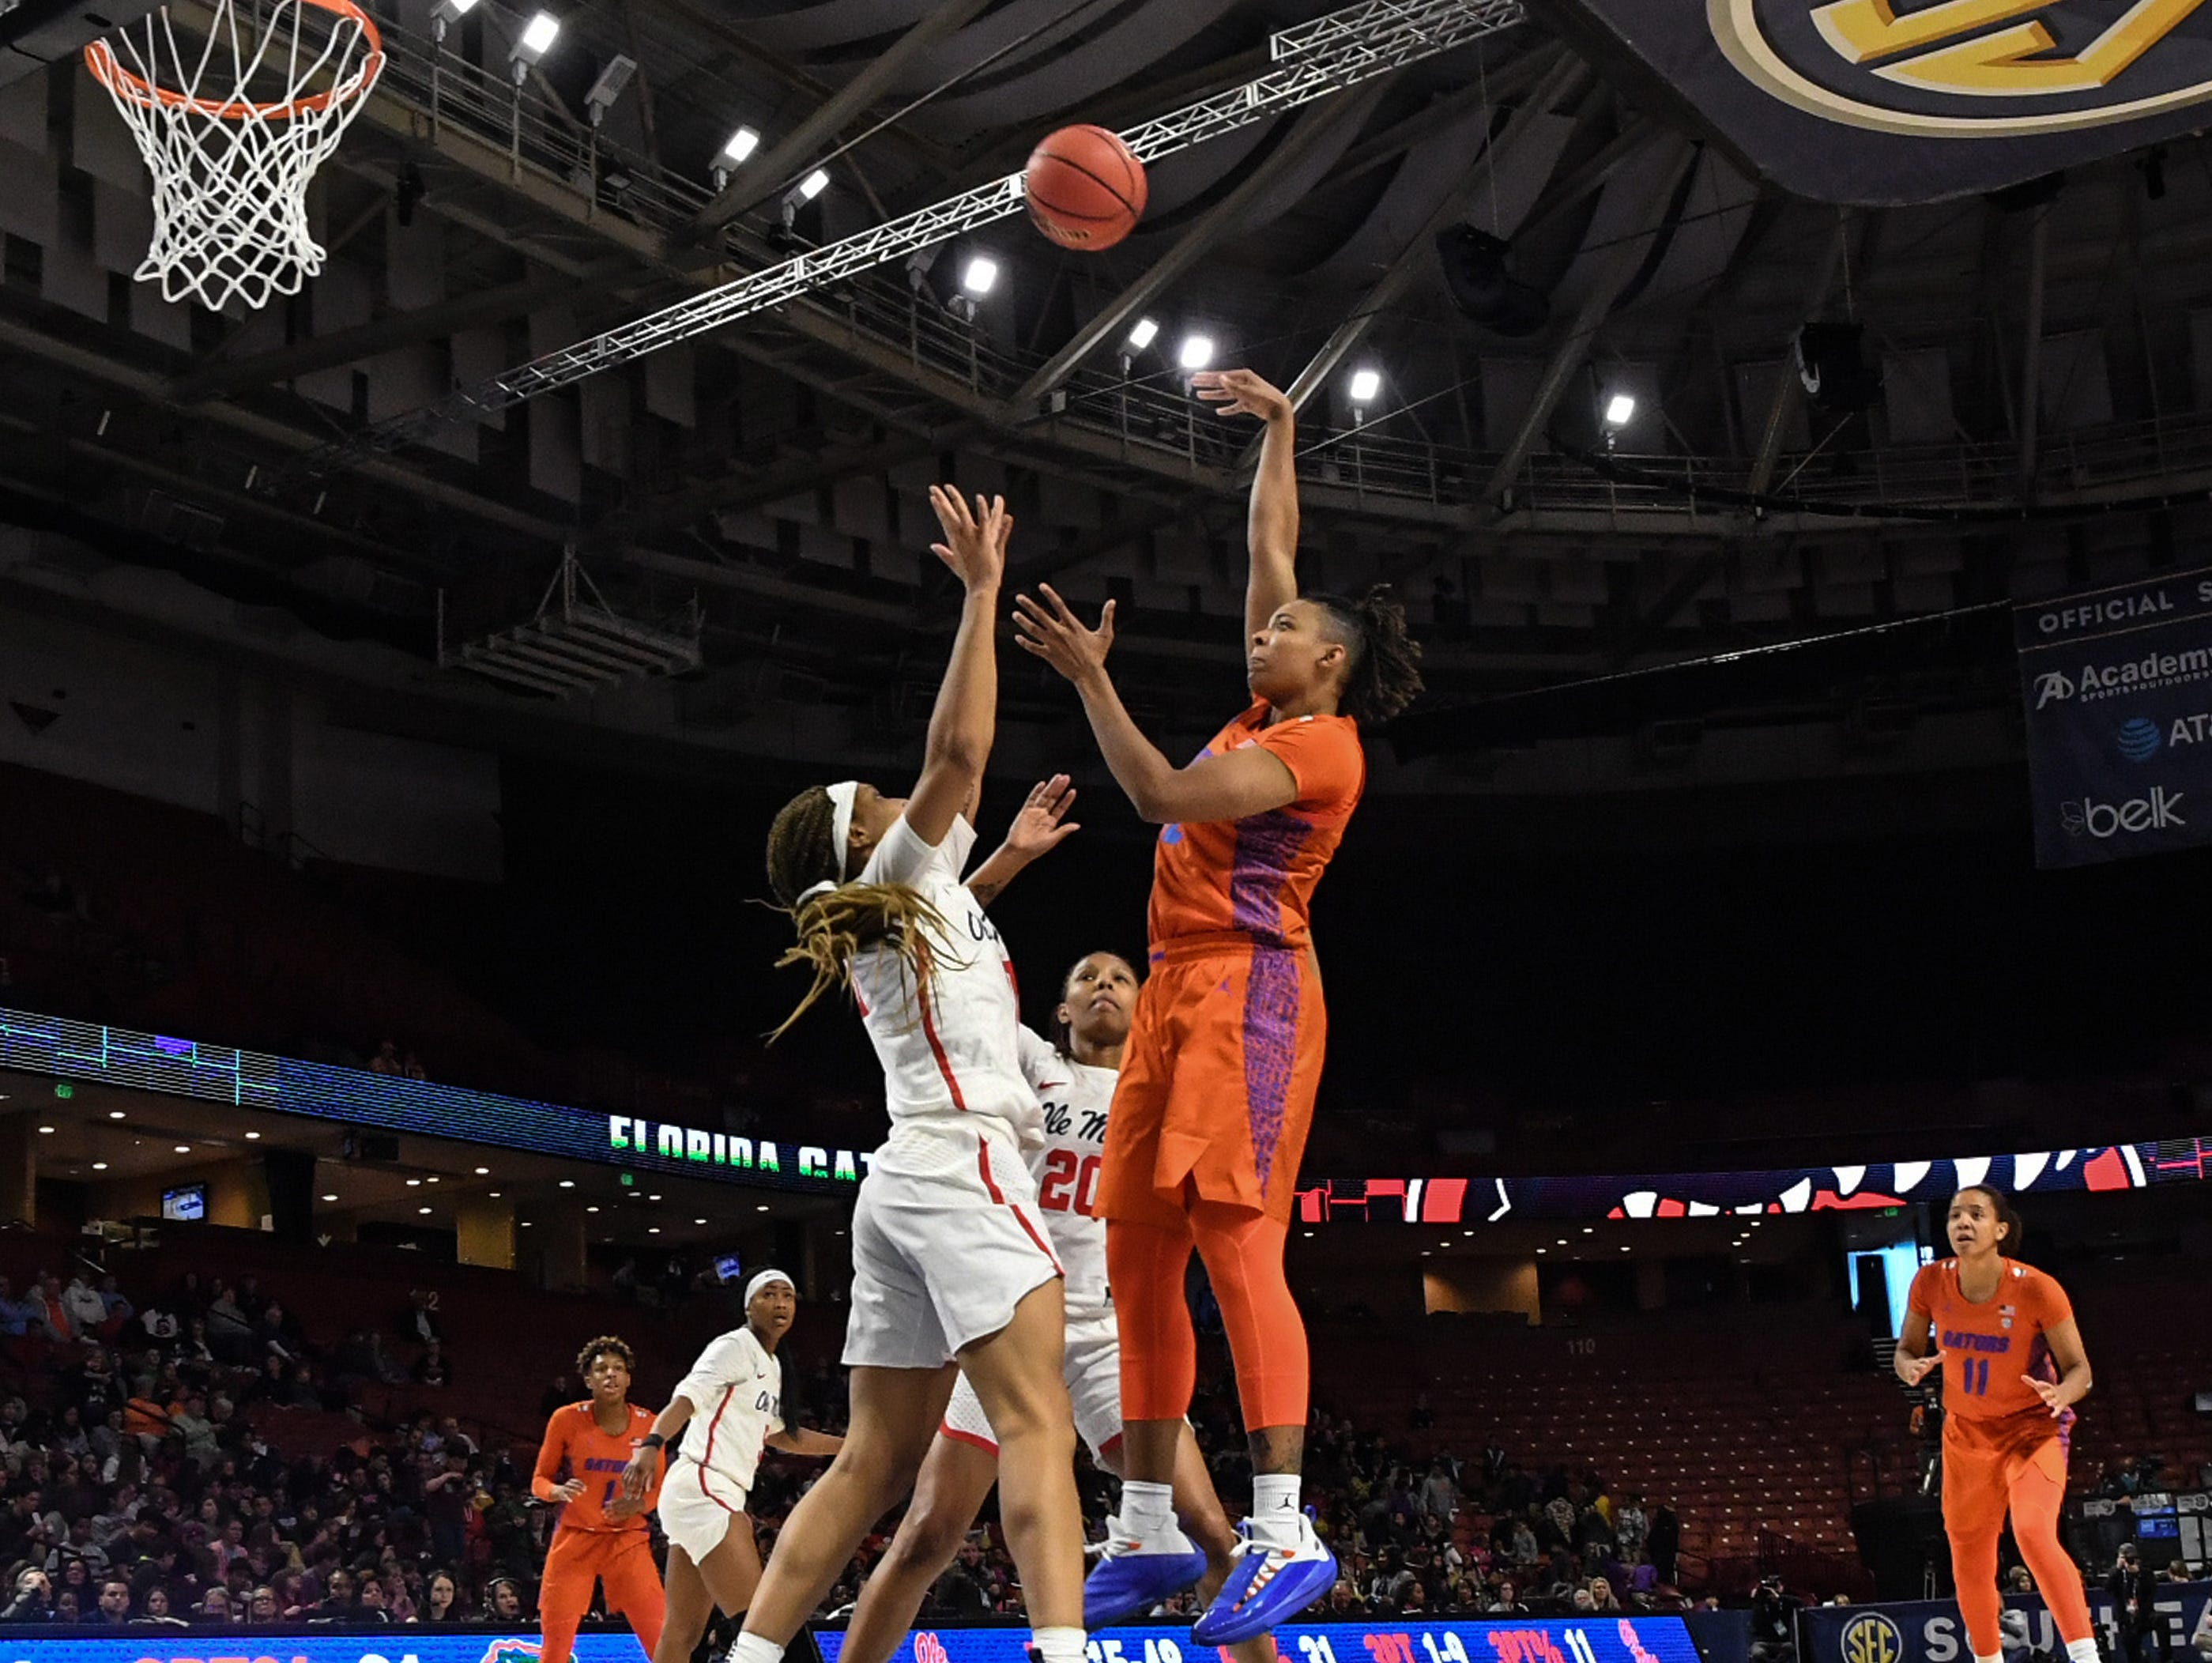 Florida forward Zada Williams shoots over Ole Miss senior Crystal Allen(5) during the fourth quarter of the Southeastern Conference Women's Tournament game at Bon Secour Wellness Arena in Greenville Wednesday, March 6, 2019.